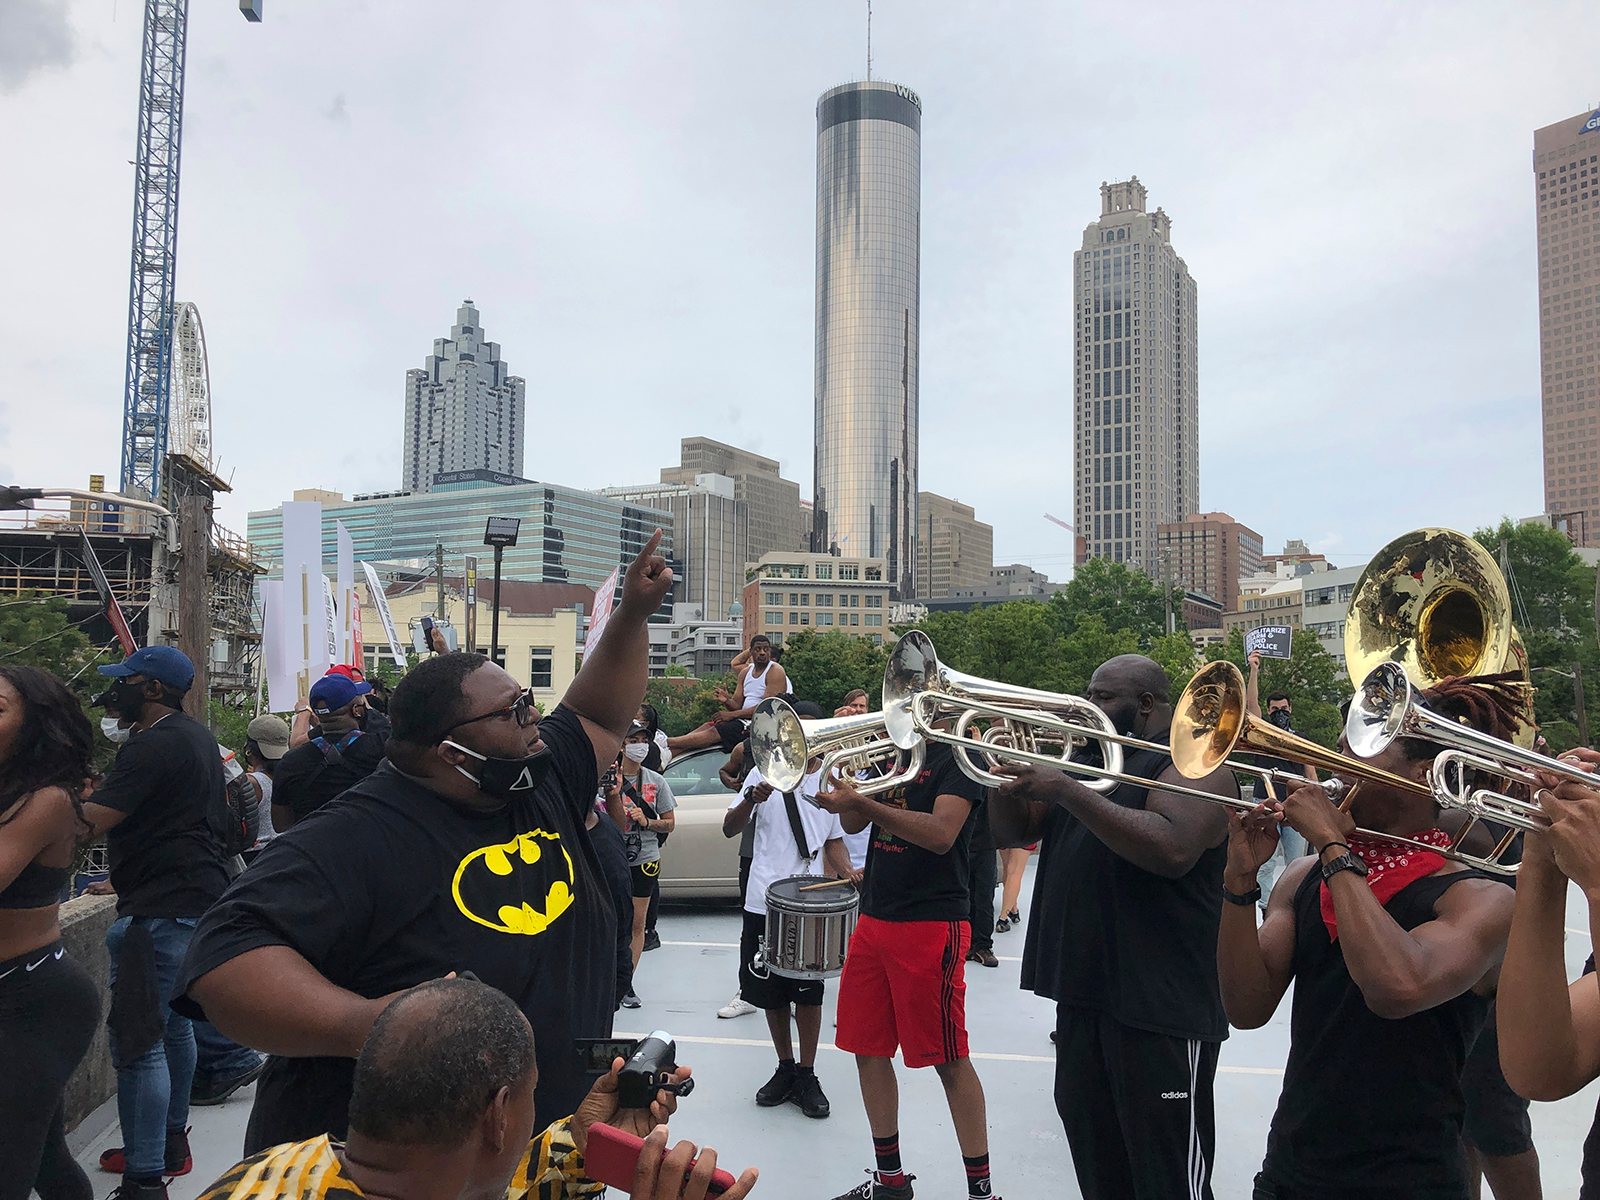 Zachary Nealy leads a brass band calling itself the Protesters Mass Band atop a parking garage in downtown Atlanta, on Saturday, June 6.